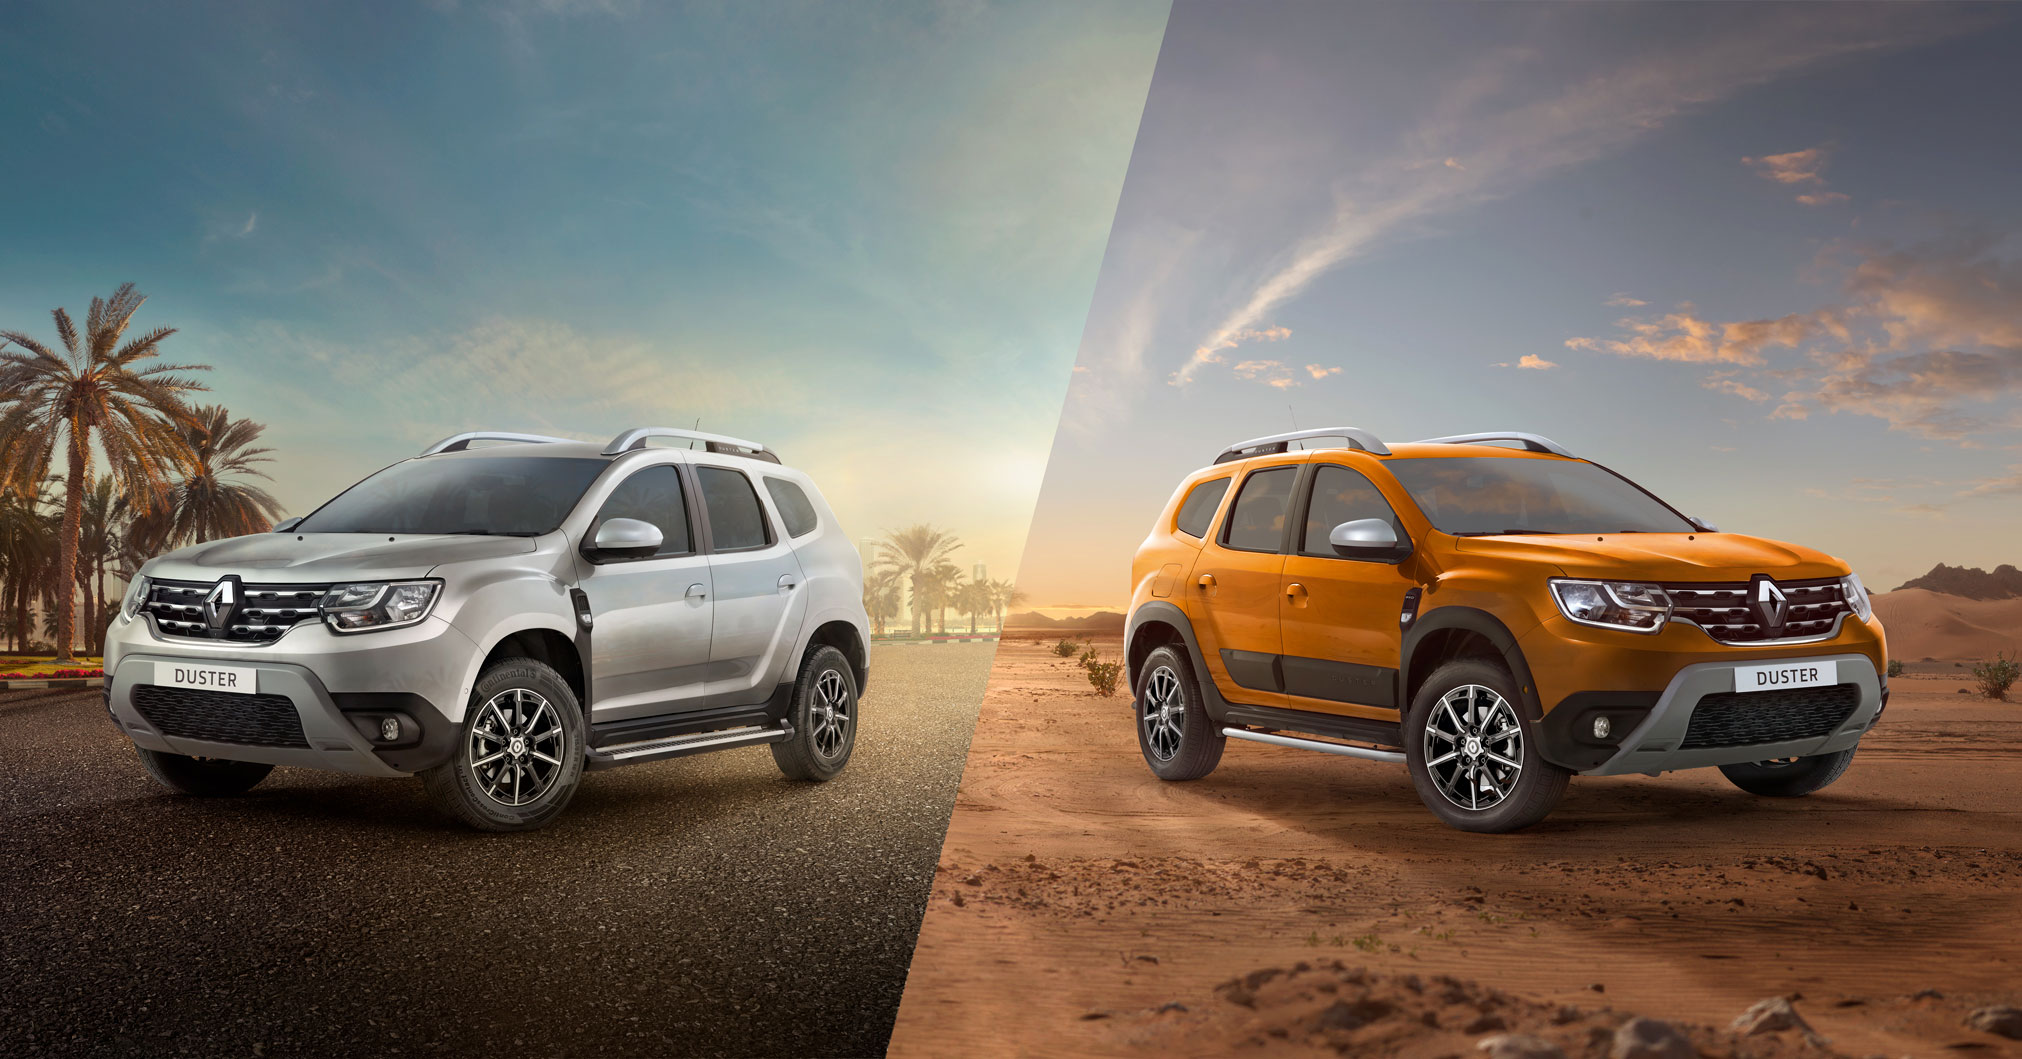 RENAULT of Arabian Automobiles embraces the bold and the stylish Duster Sport & Urban